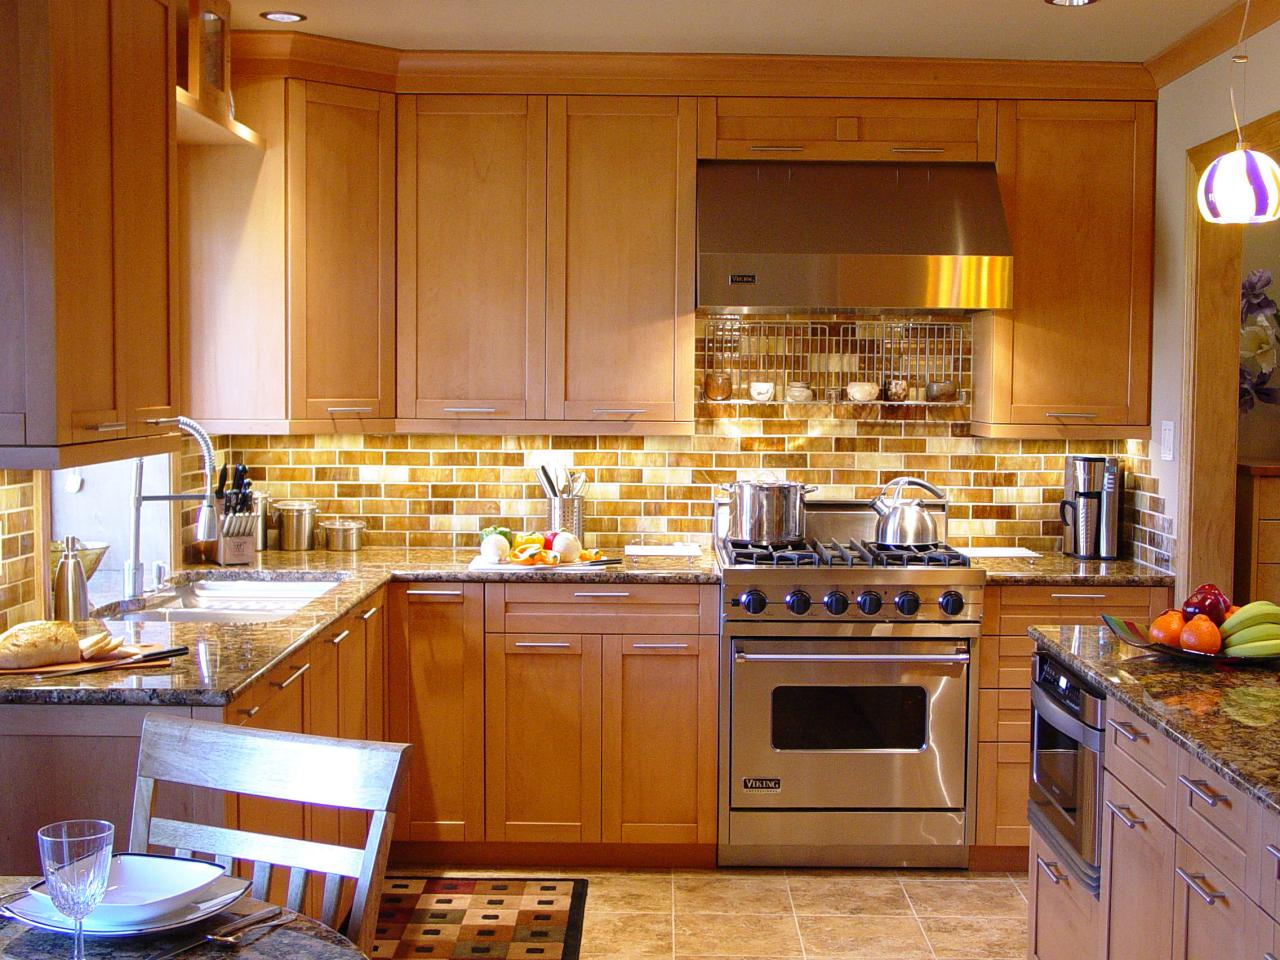 Awesome Renovate Your Kitchen For Under $1,000 Design Ideas